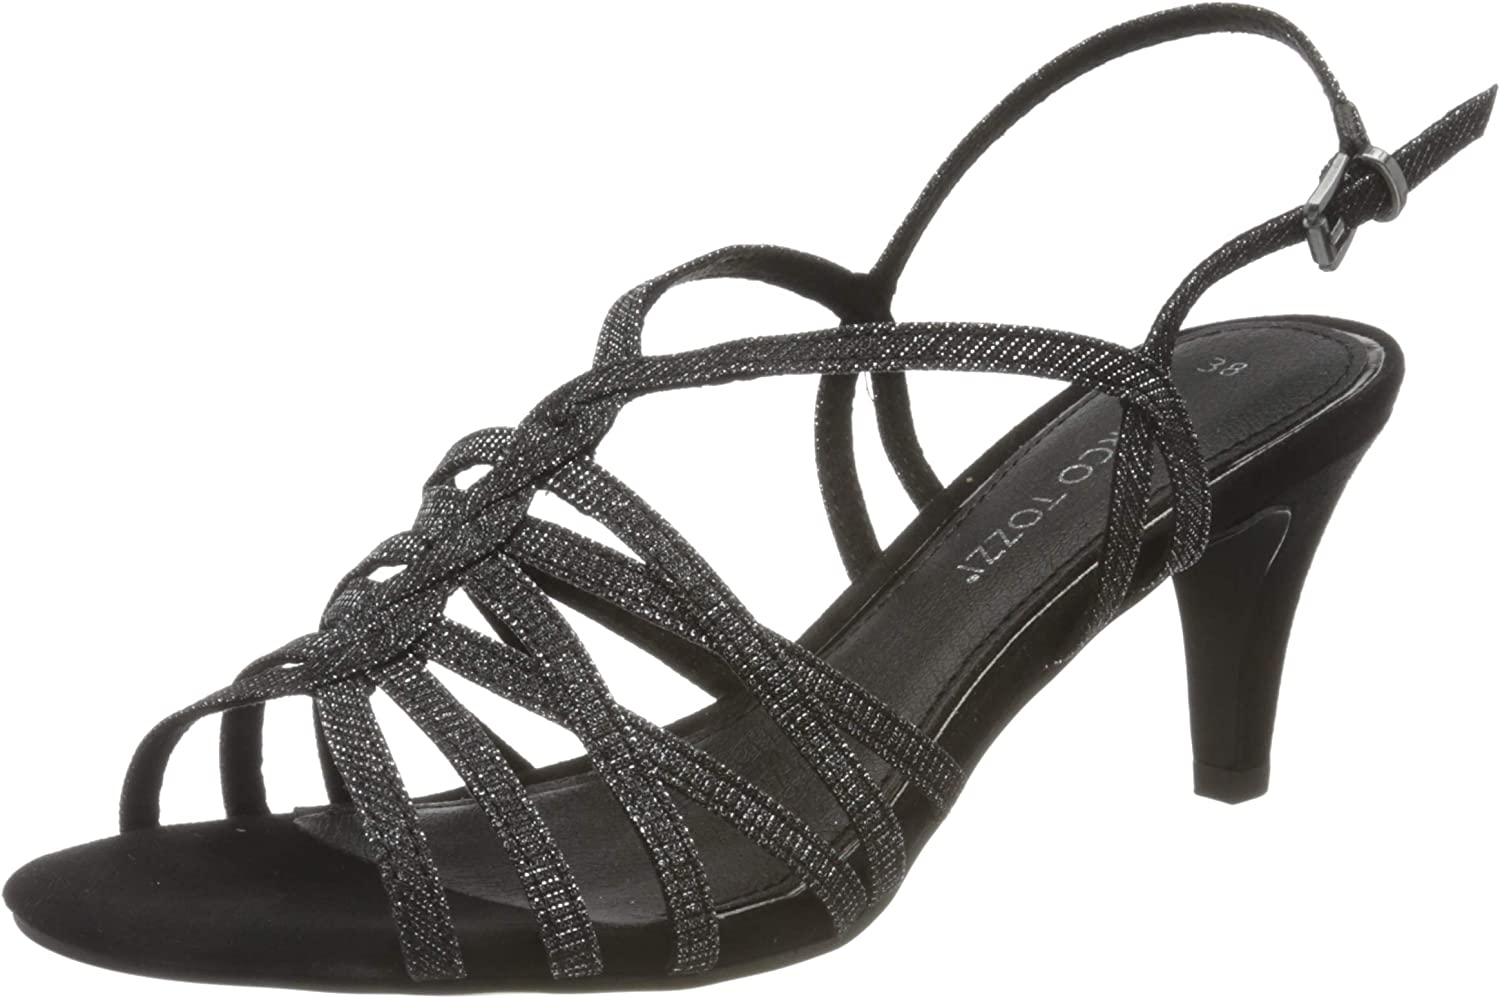 Challenge the lowest price of Japan Marco Tozzi Women's Sandals Award-winning store Strap Ankle